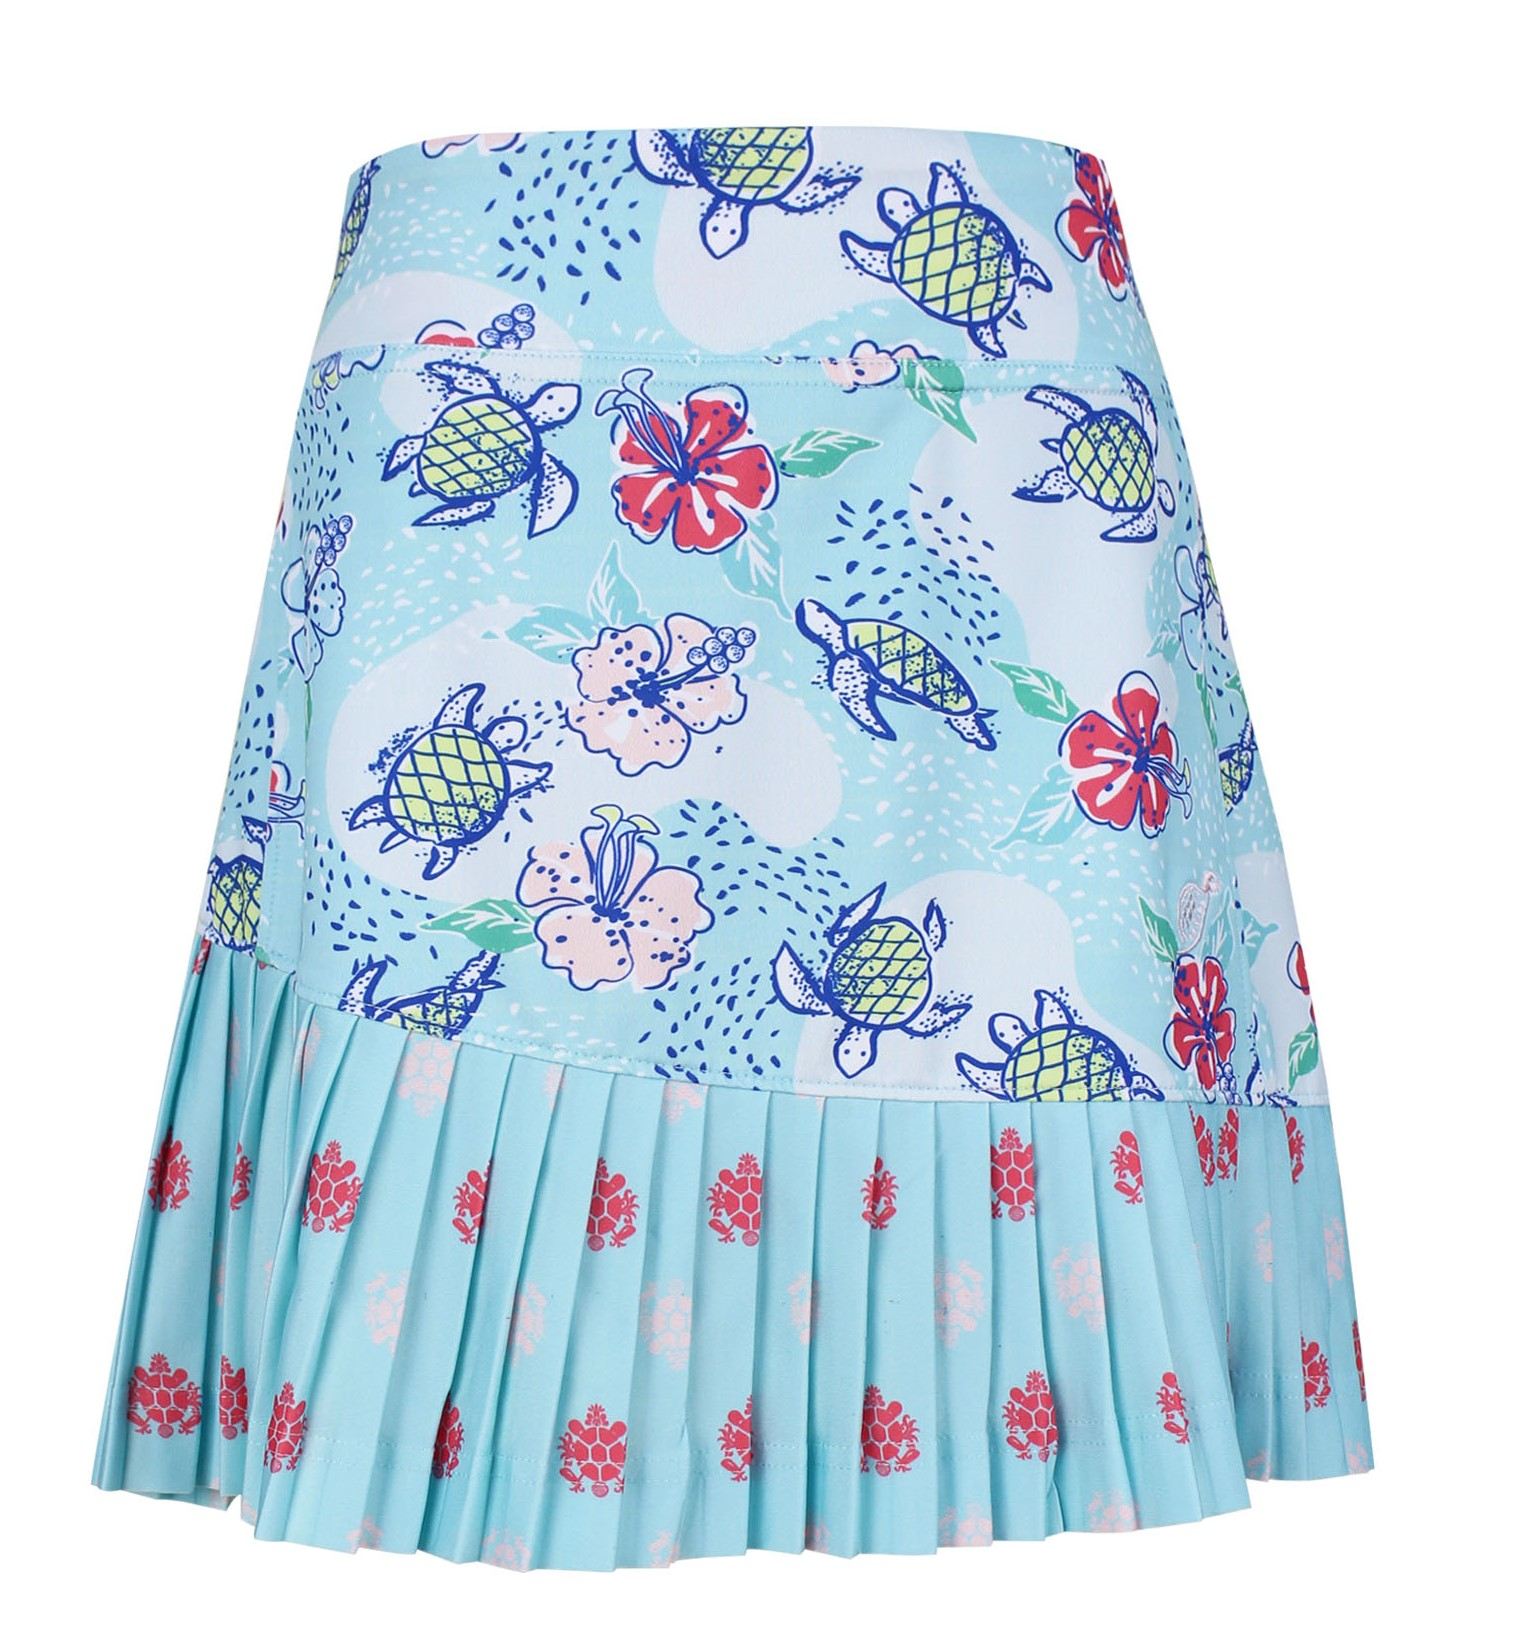 Charlee Accordion Pleated Girls's Golf & Tennis Skort in Turtles on Course Print